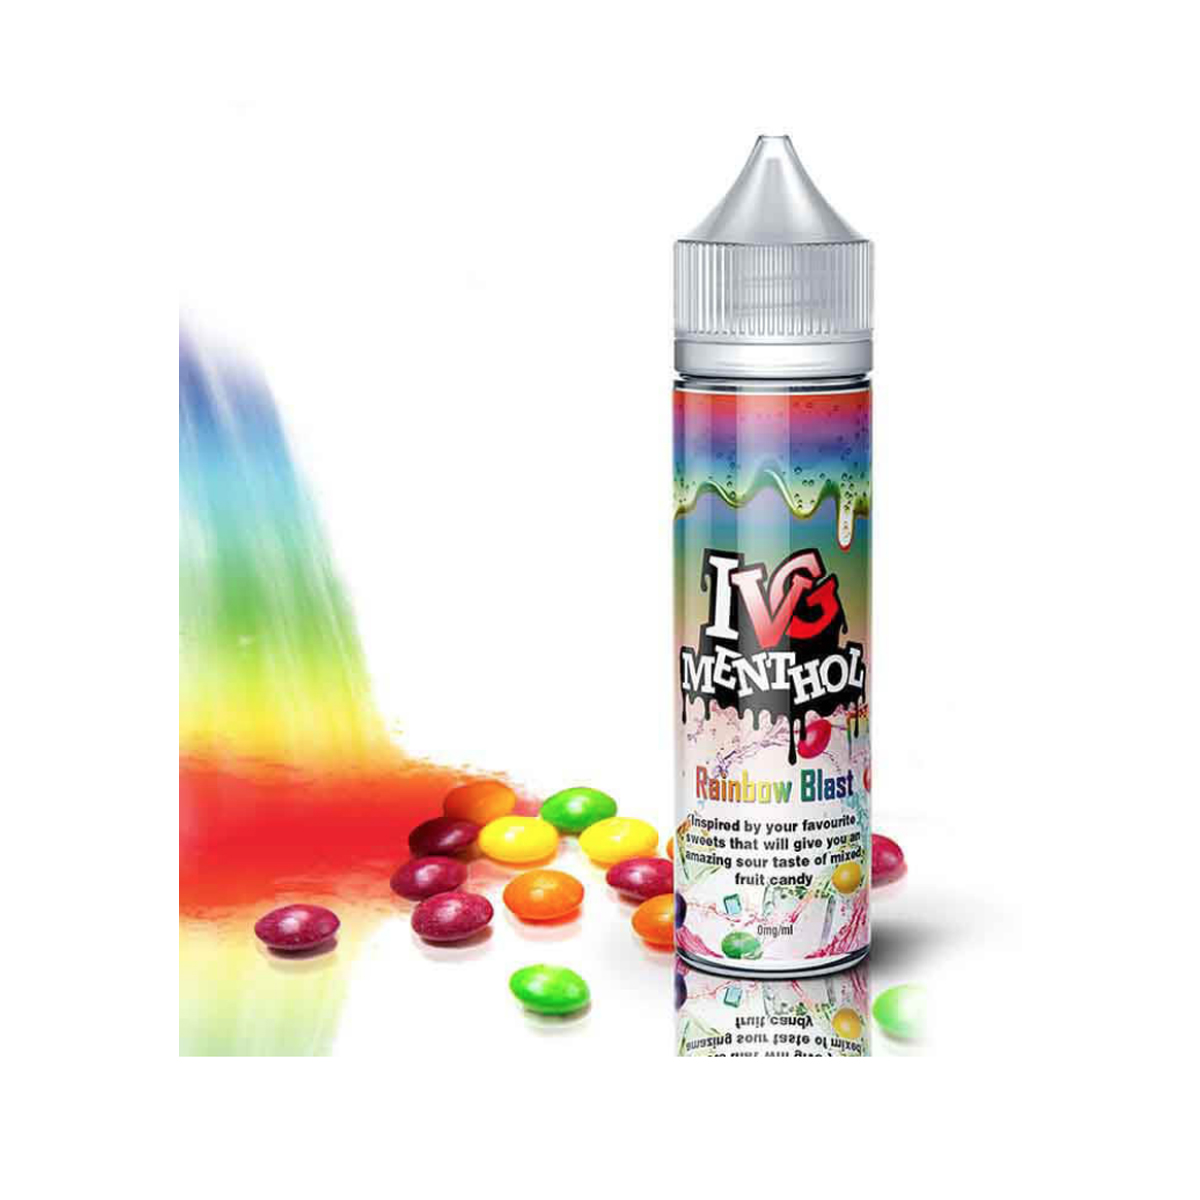 Rainblow Blast E-Juice 50ml